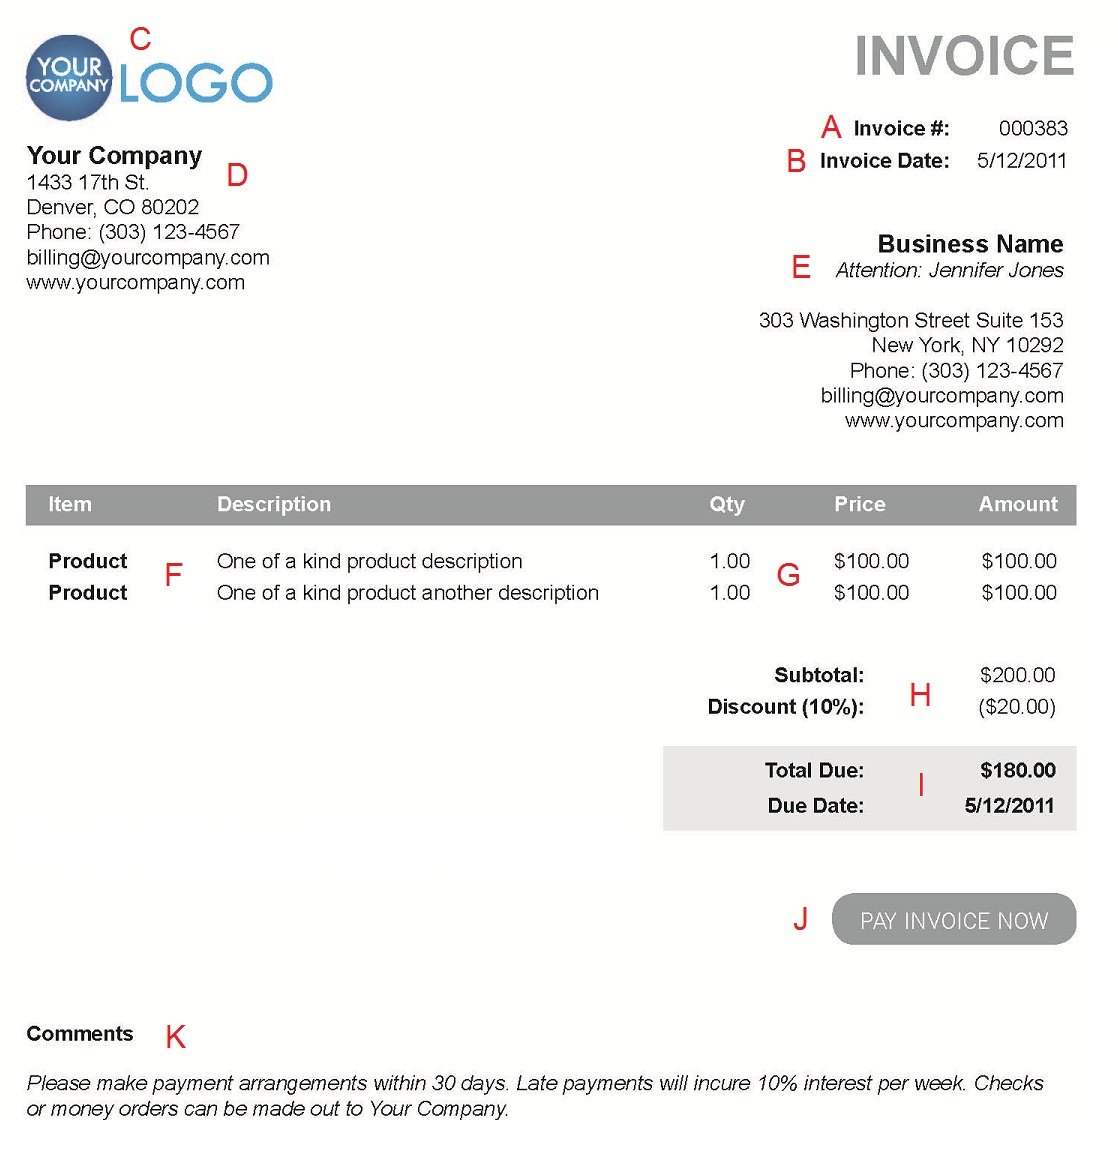 Ultrablogus  Surprising The  Different Sections Of An Electronic Payment Invoice With Great A  With Divine Best Invoice Also Self Employed Invoice In Addition Free Sample Invoice Template And Freshbooks Invoice Templates As Well As Accounts Receivable Invoice Additionally  Lexus Es  Invoice Price From Paysimplecom With Ultrablogus  Great The  Different Sections Of An Electronic Payment Invoice With Divine A  And Surprising Best Invoice Also Self Employed Invoice In Addition Free Sample Invoice Template From Paysimplecom